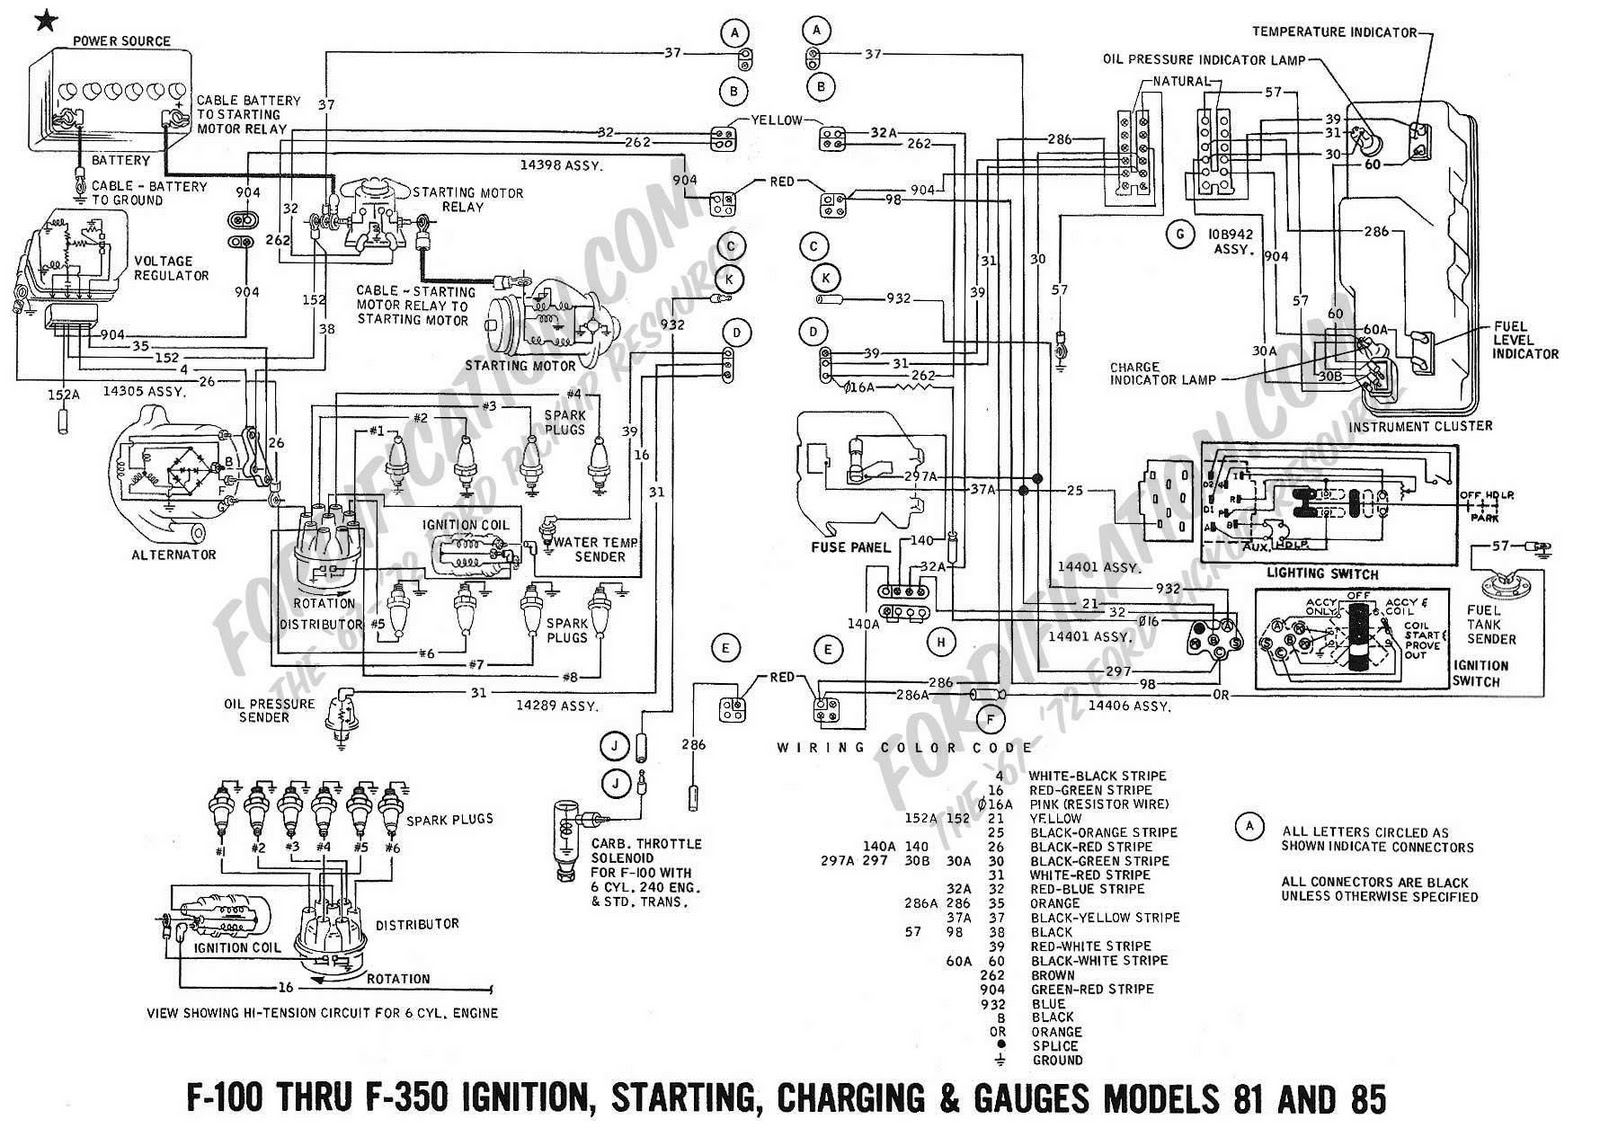 300DC L9000 Wiring Diagram | Digital Resources on 95 f250 headlights, 95 f250 ignition coil, 95 f250 parts, 95 f250 engine, 95 f250 fuel pump, 95 f250 exhaust, 95 f250 service manual, 95 f250 charging system, 95 f250 tires, 95 f250 suspension, 95 f250 wiper motor, 95 f250 transmission, 95 f250 wheels, 95 f250 accessories, 95 f250 seats,